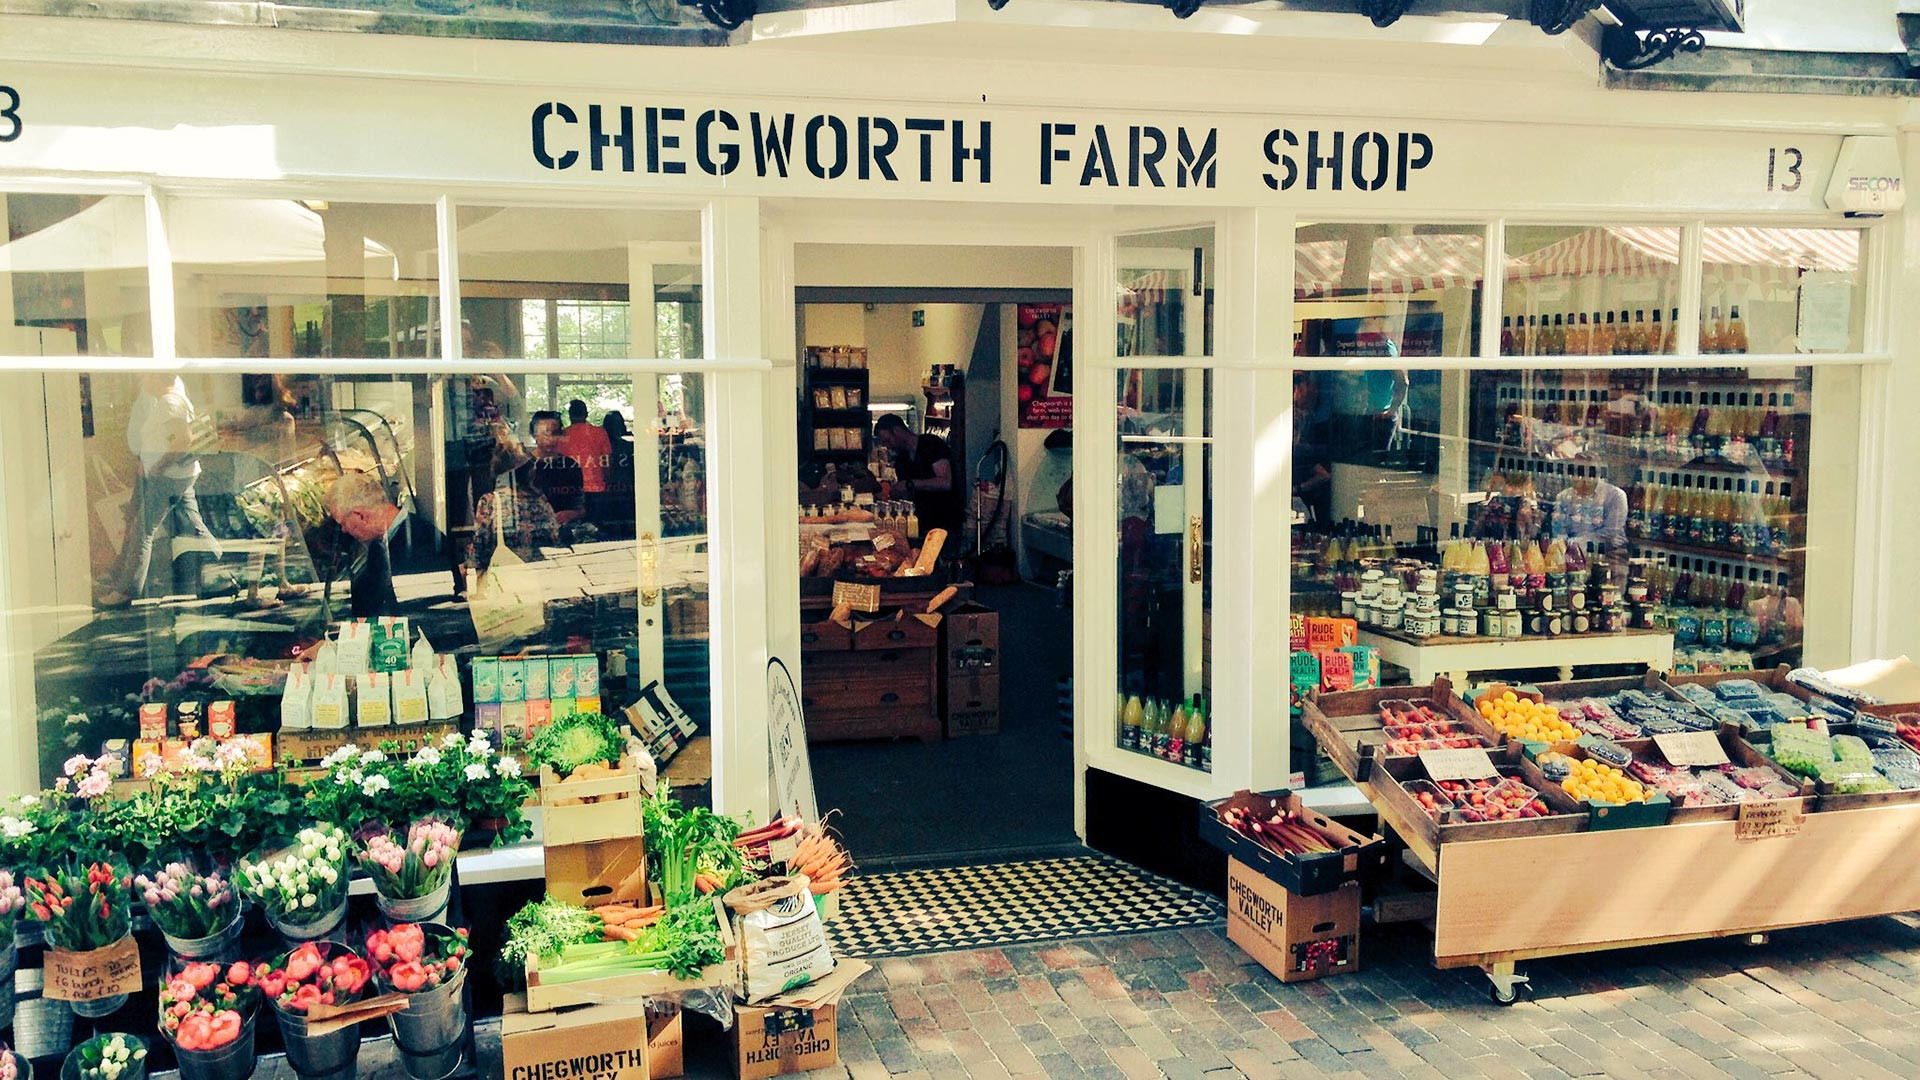 Chegworth Farm Shop